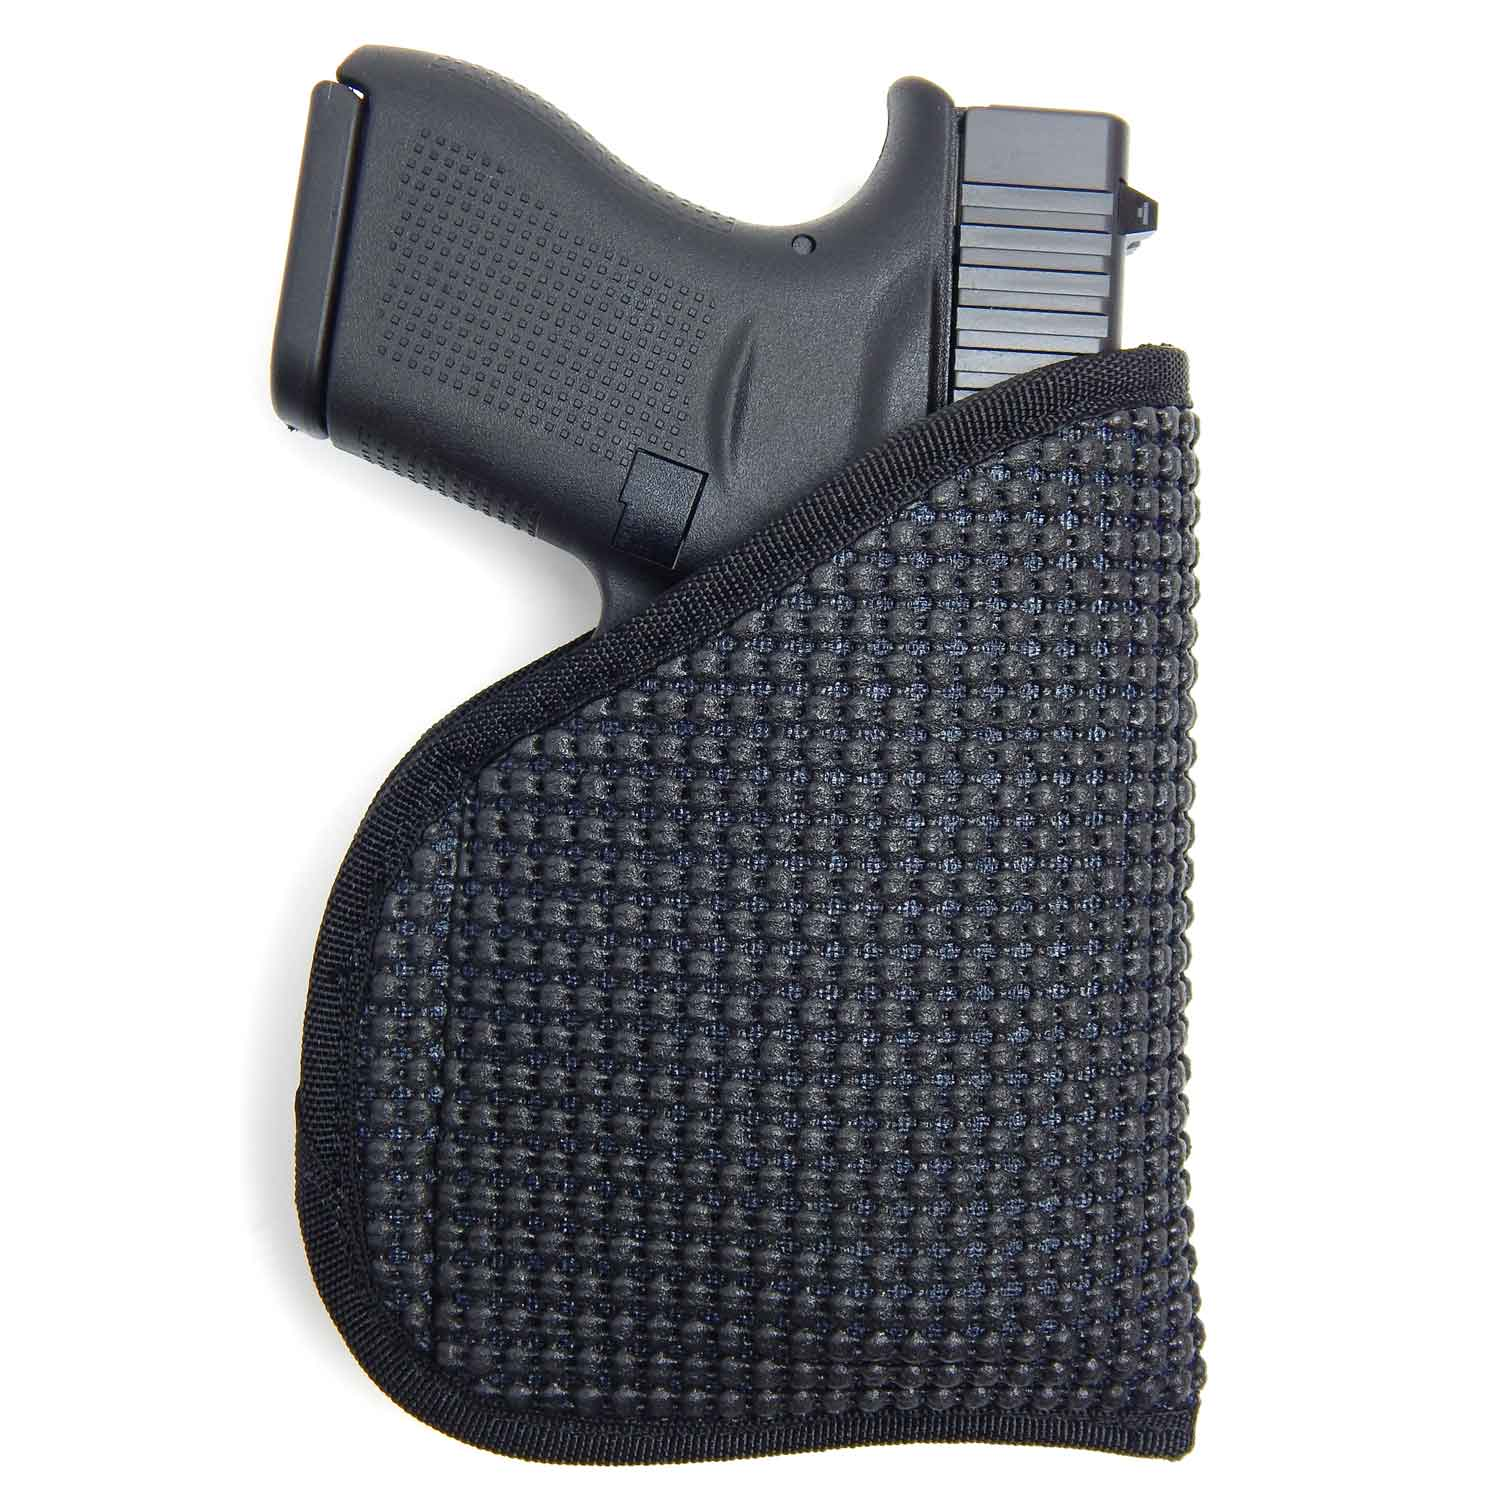 IWB-Pocket Concealed Carry Gun Holster HoldFast - Active Pro Gear